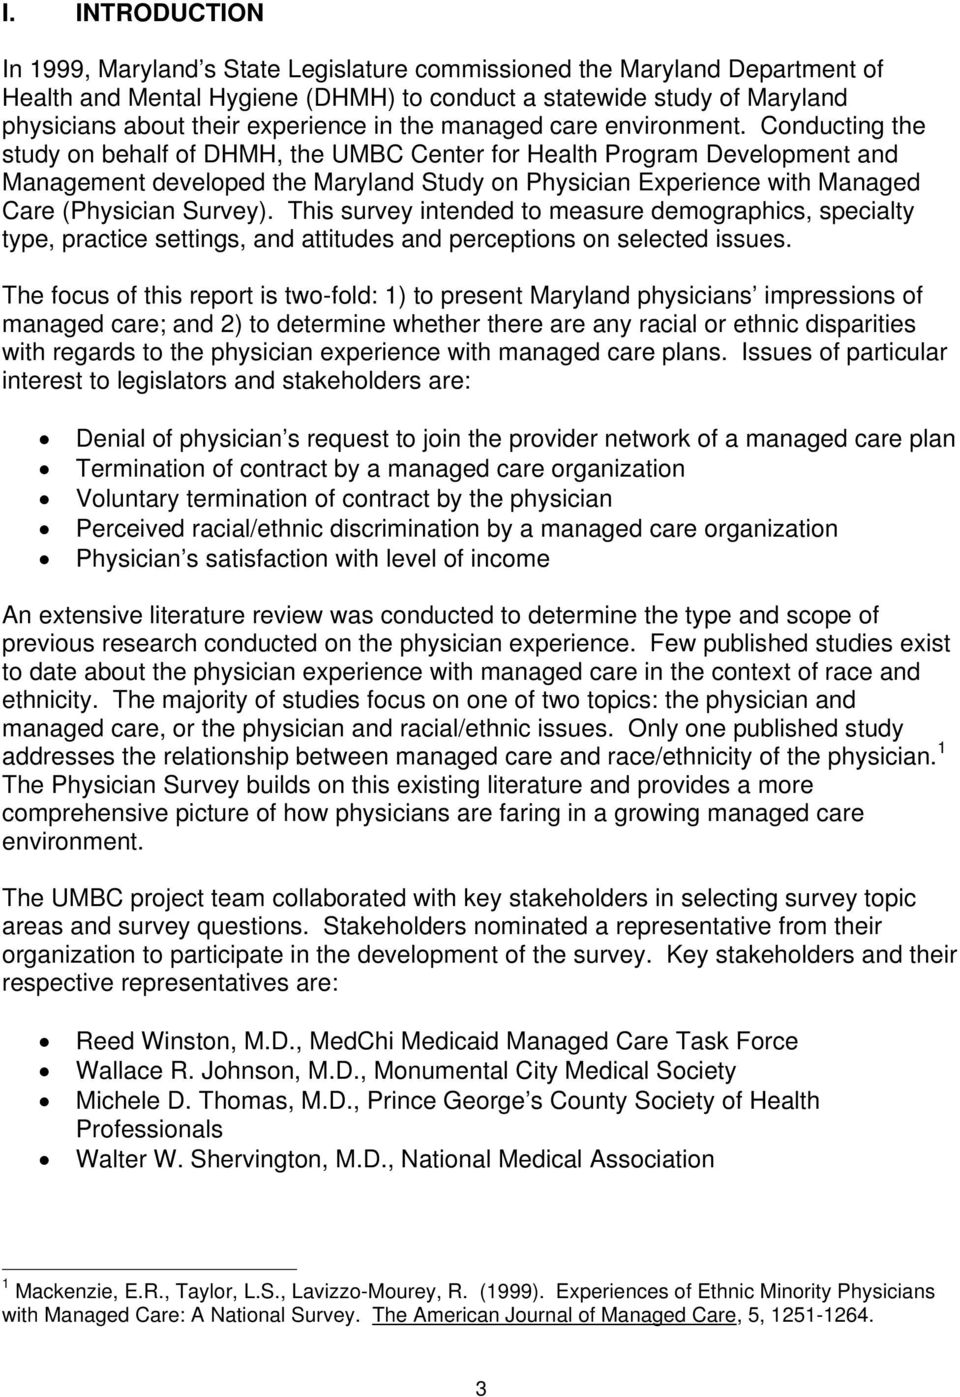 Conducting the study on behalf of DHMH, the UMBC Center for Health Program Development and Management developed the Maryland Study on Physician Experience with Managed Care (Physician Survey).